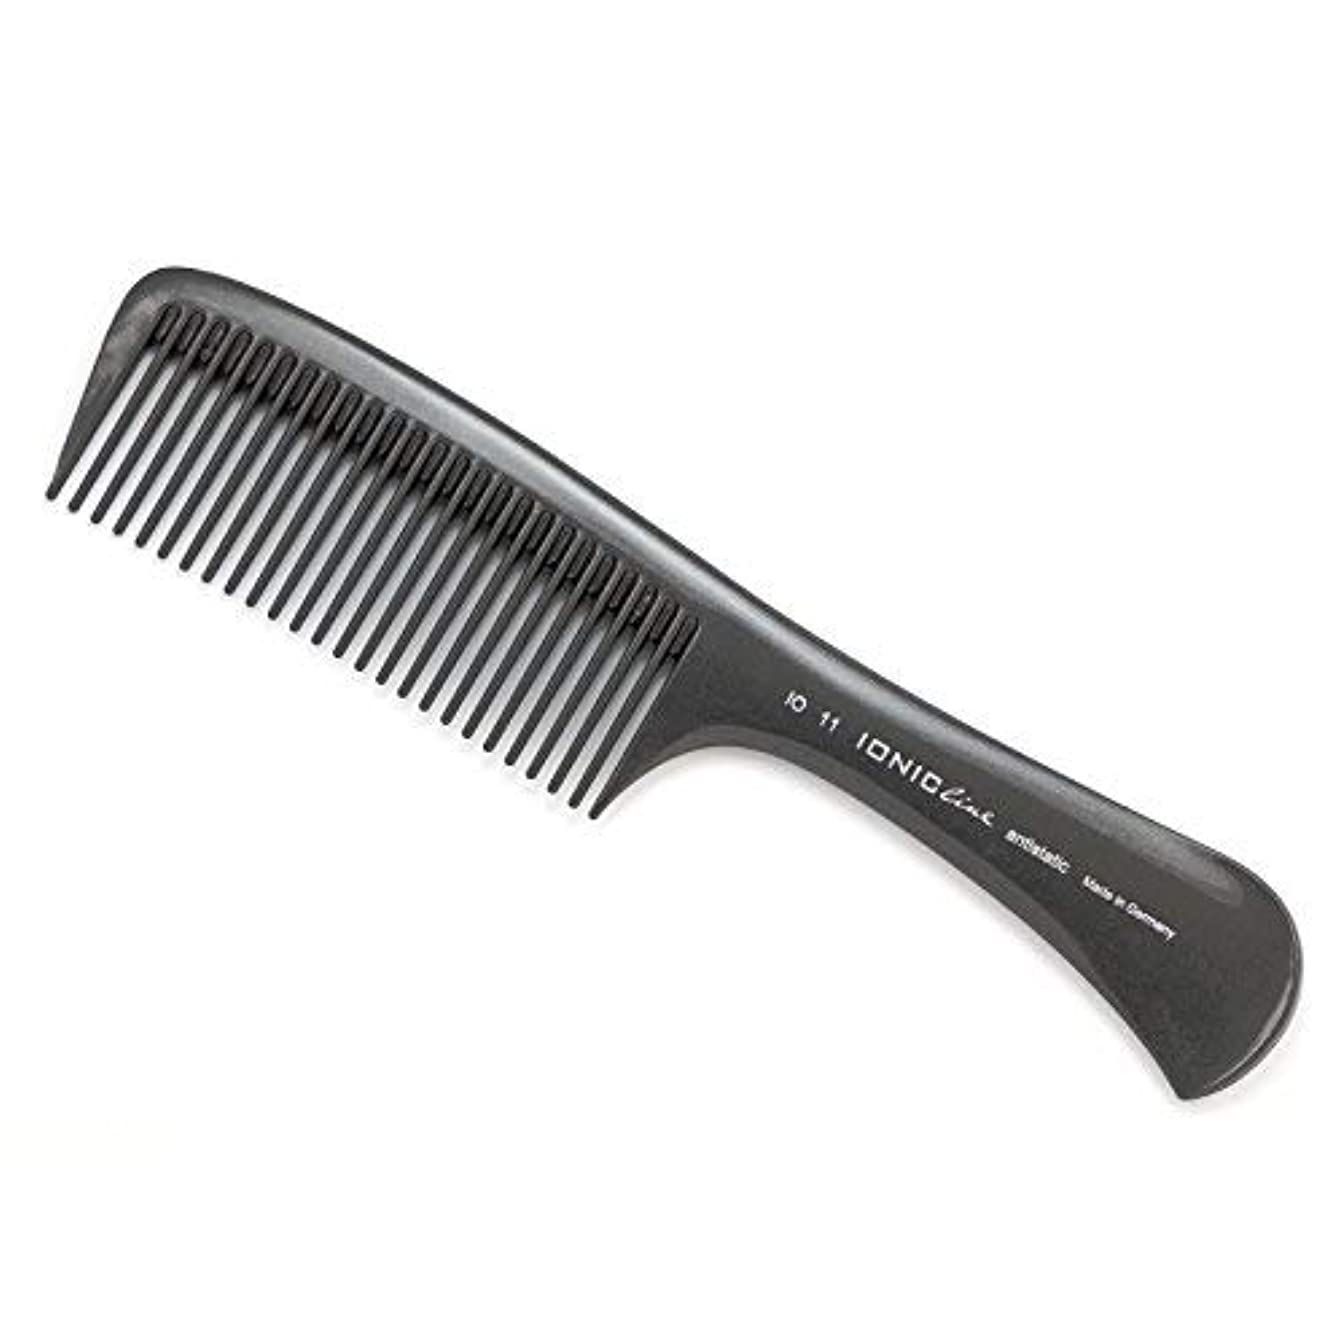 引き渡す夢中ステレオタイプHercules S?gemann IONIC Line Handle Comb, Big Working Comb | Ionized Thermoplastic - Made in Germany [並行輸入品]